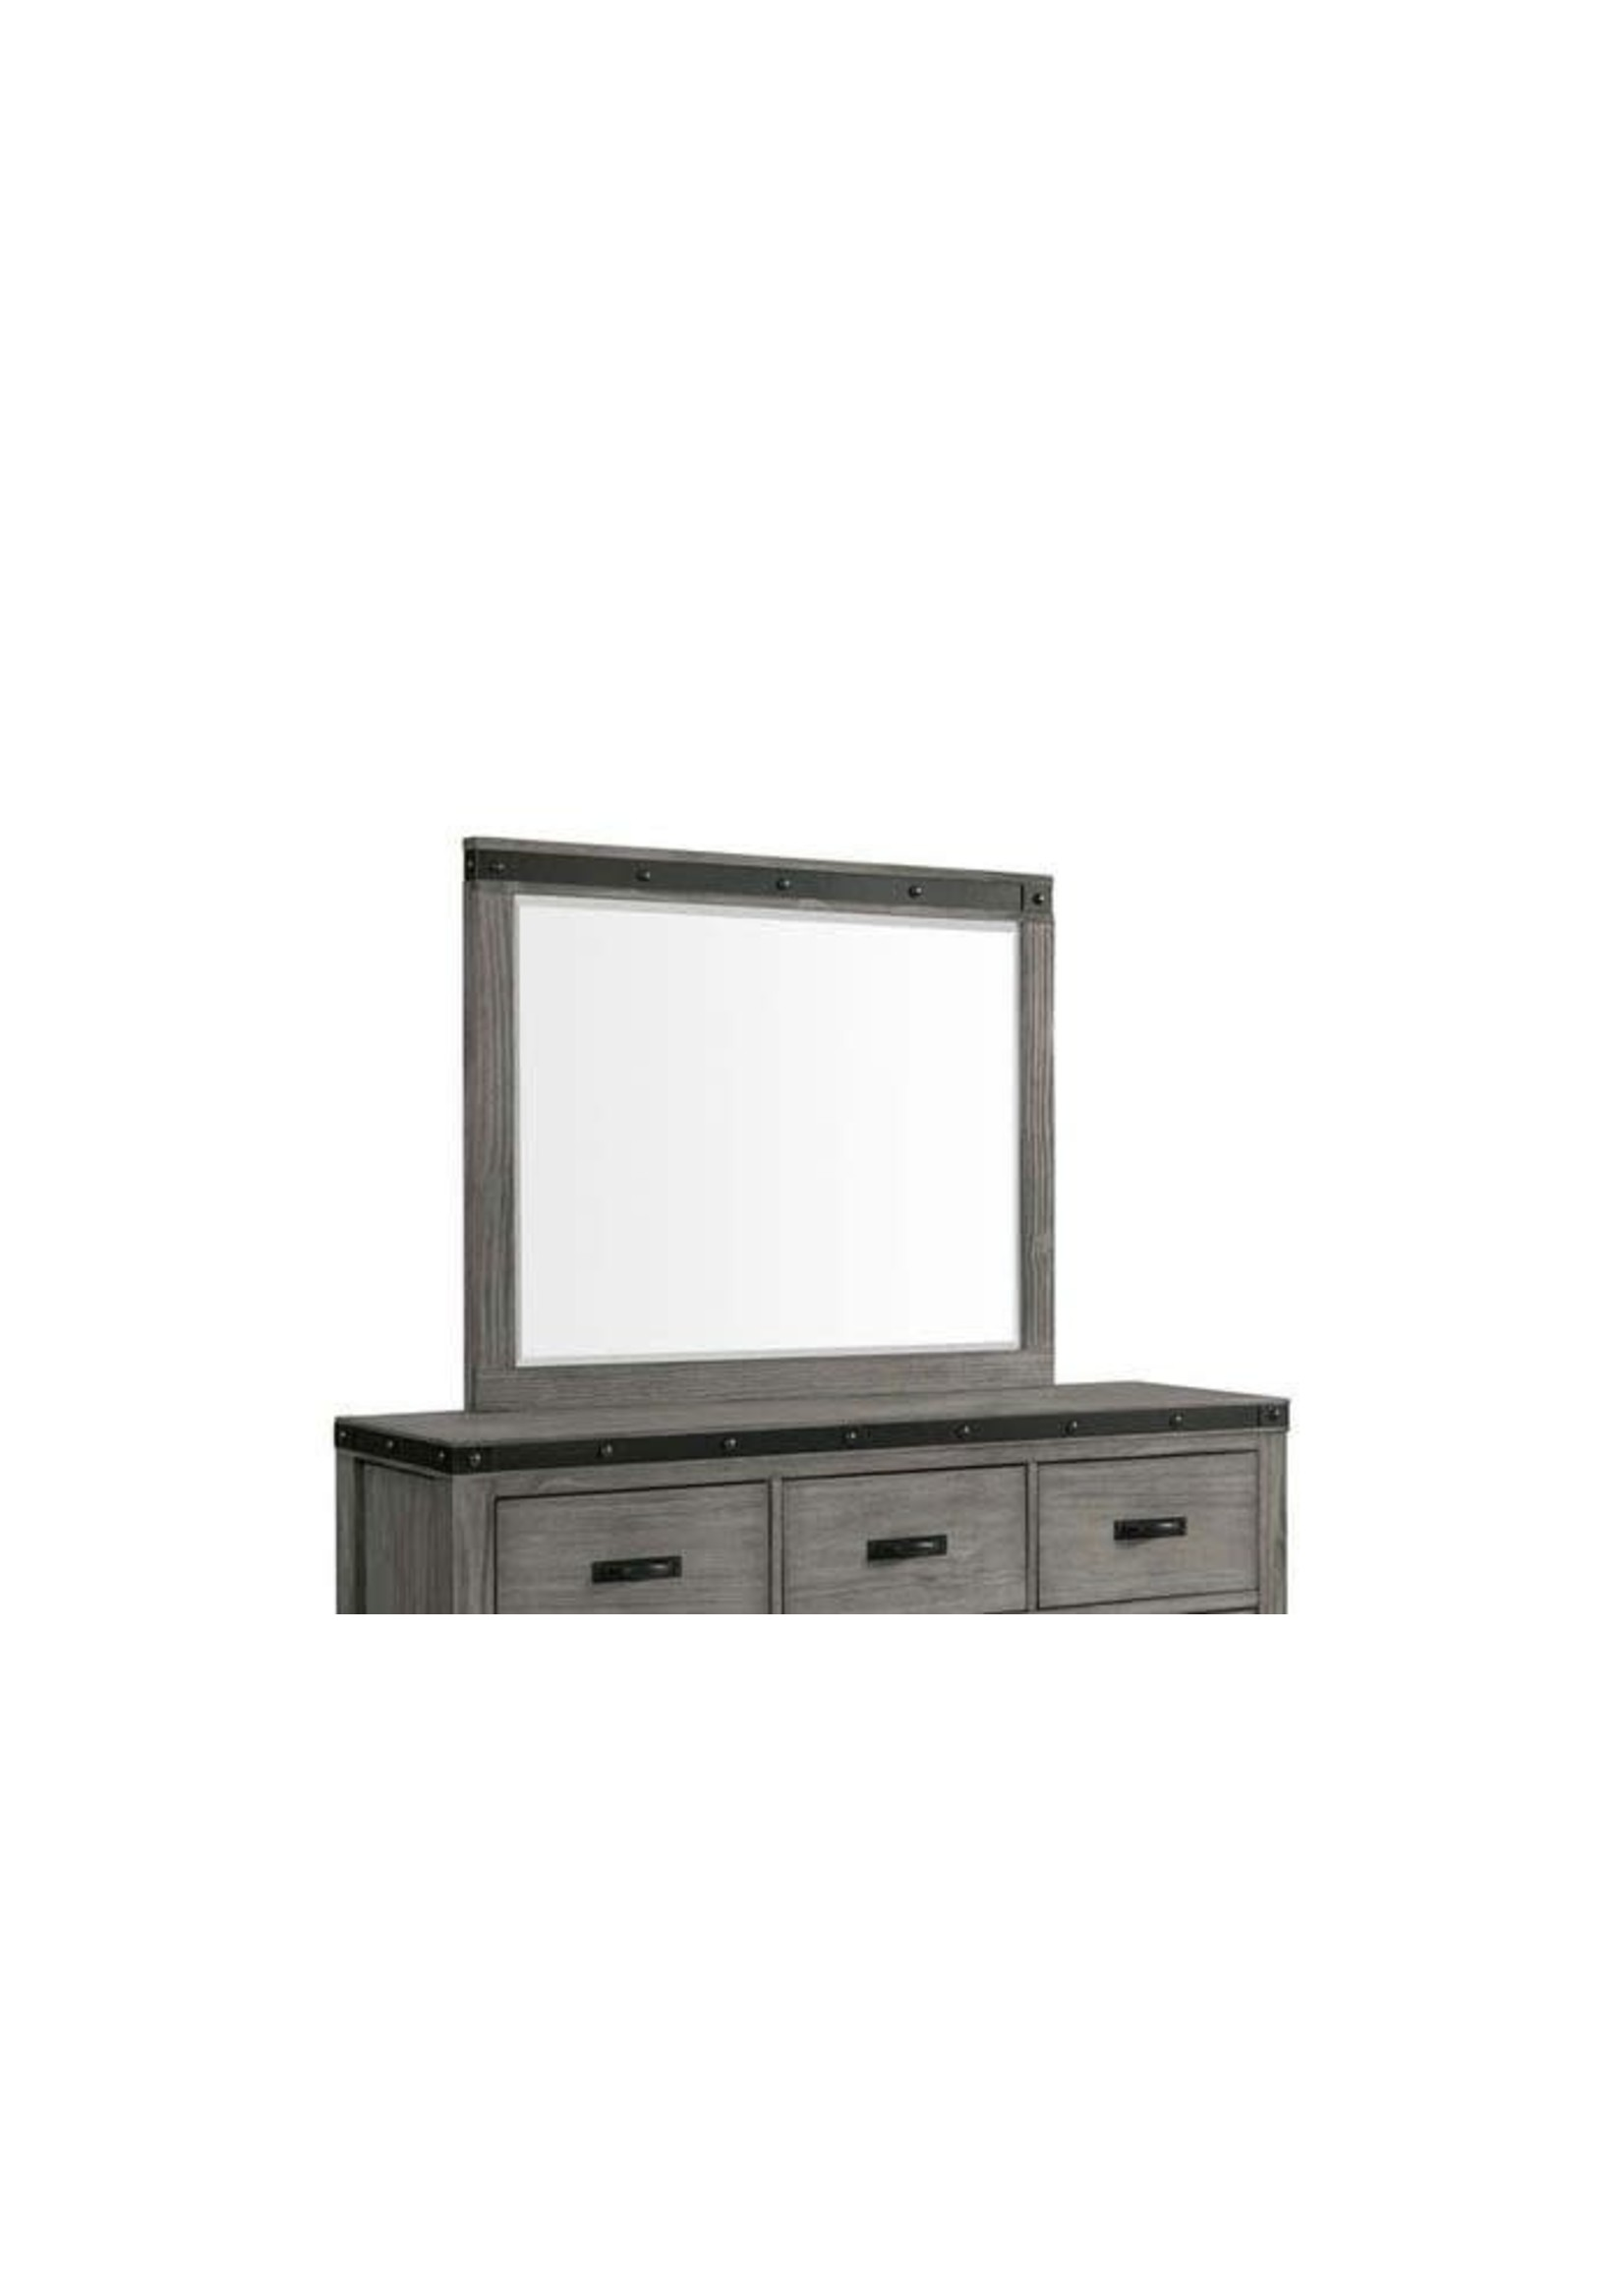 ELEMENTS WADE YOUTH MIRROR IN GREY